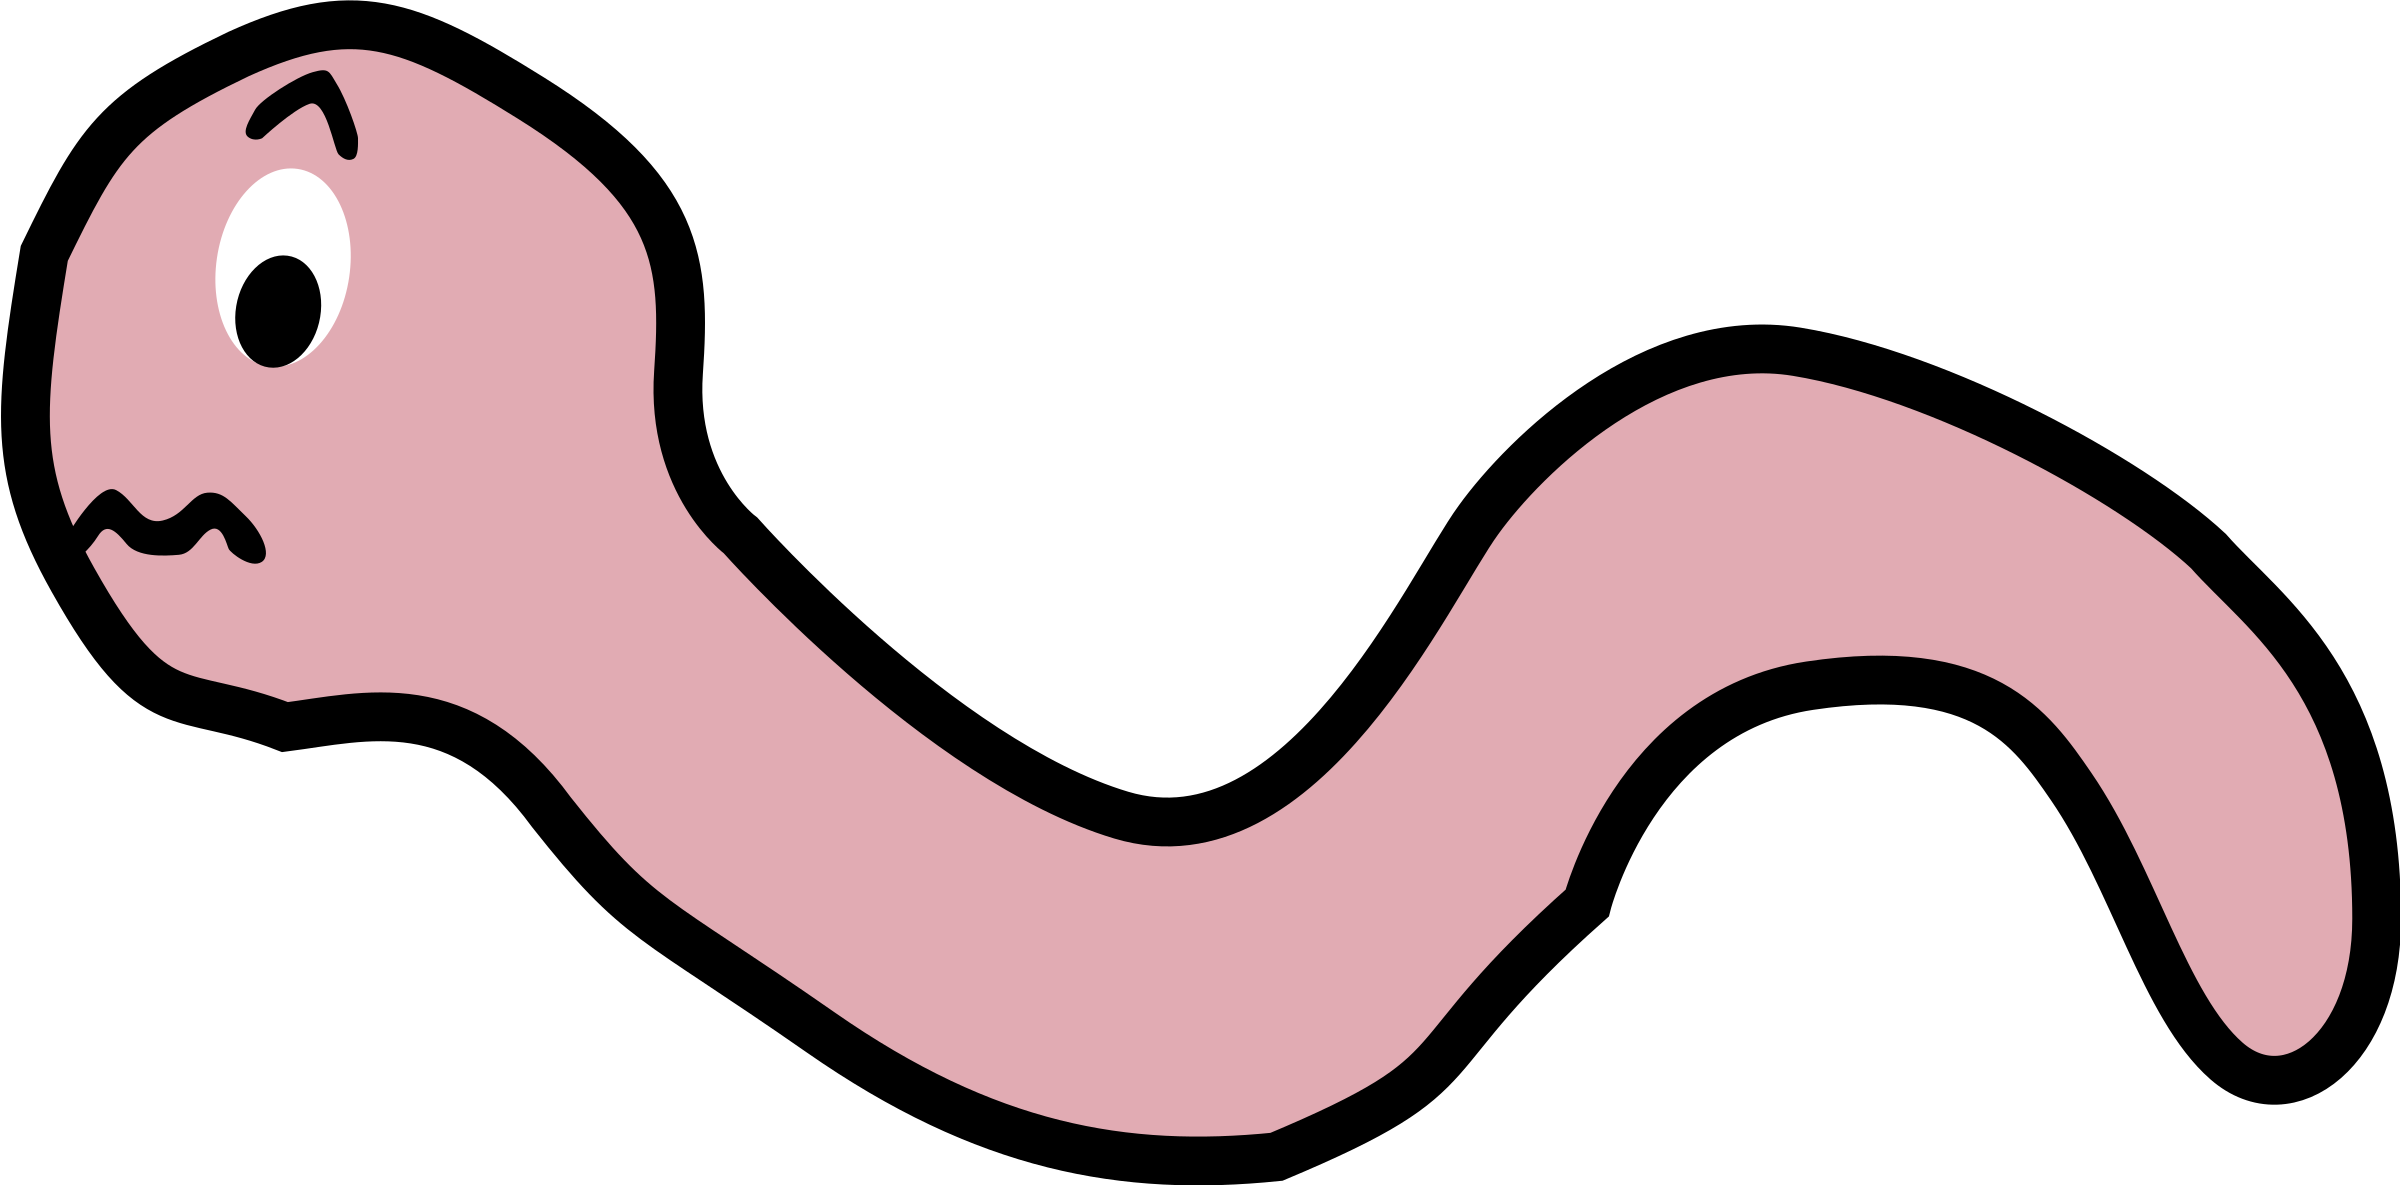 Worm clipart platyhelminthes. Images of earthworm drawing